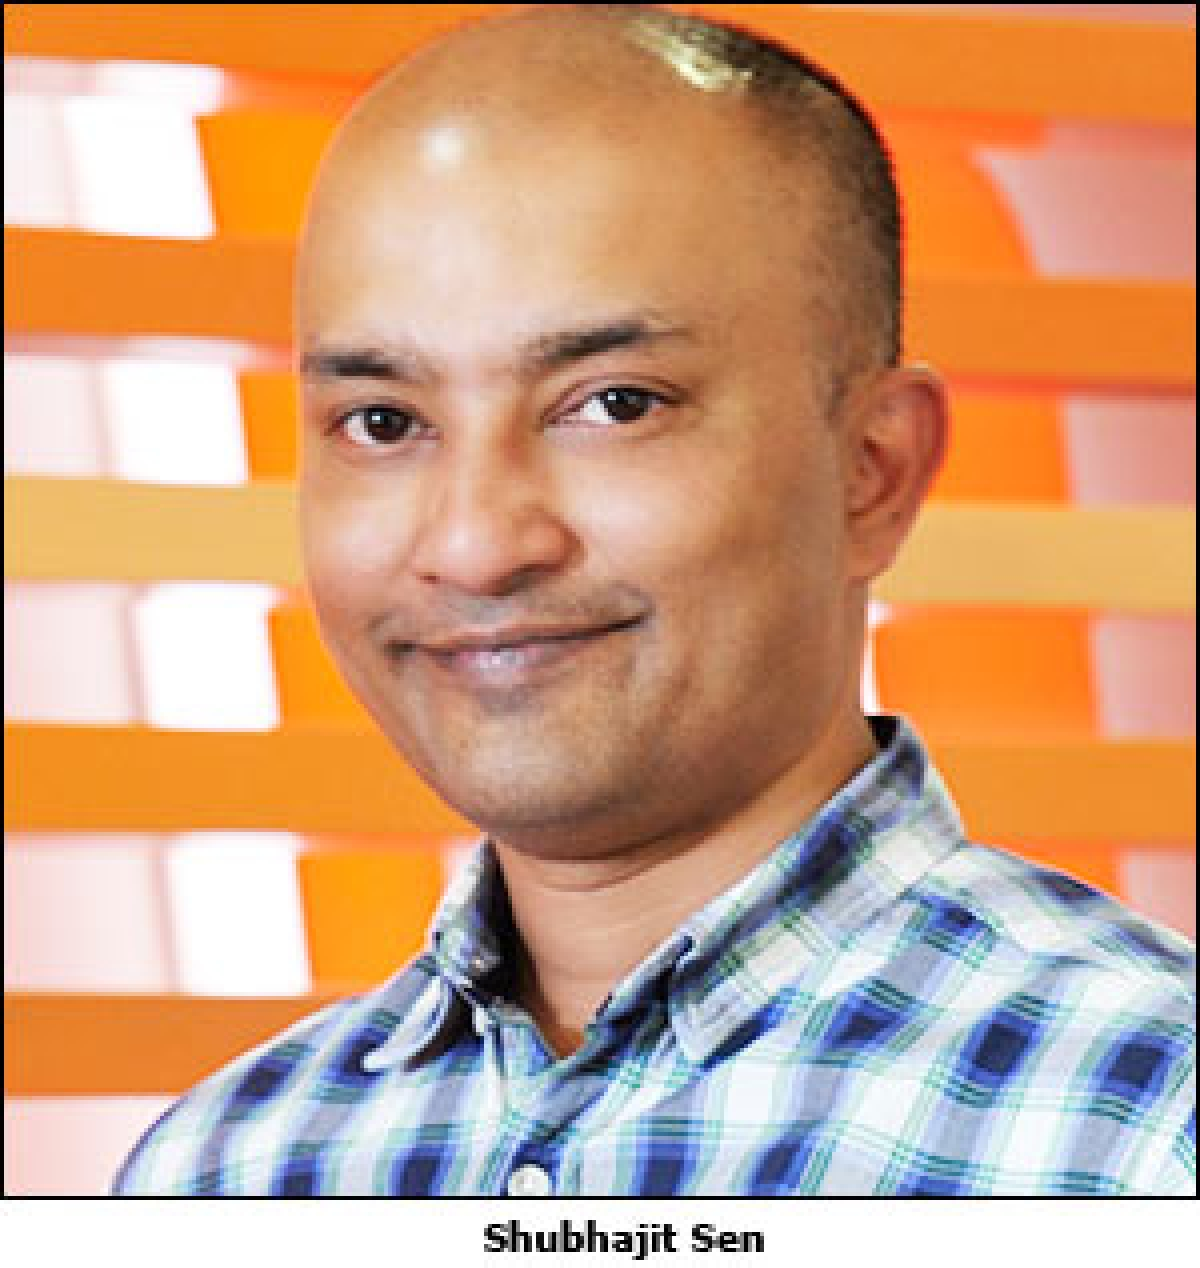 """Micromax has been through distinct phases; today it can be seen as 'premium'"": Shubhajit Sen"